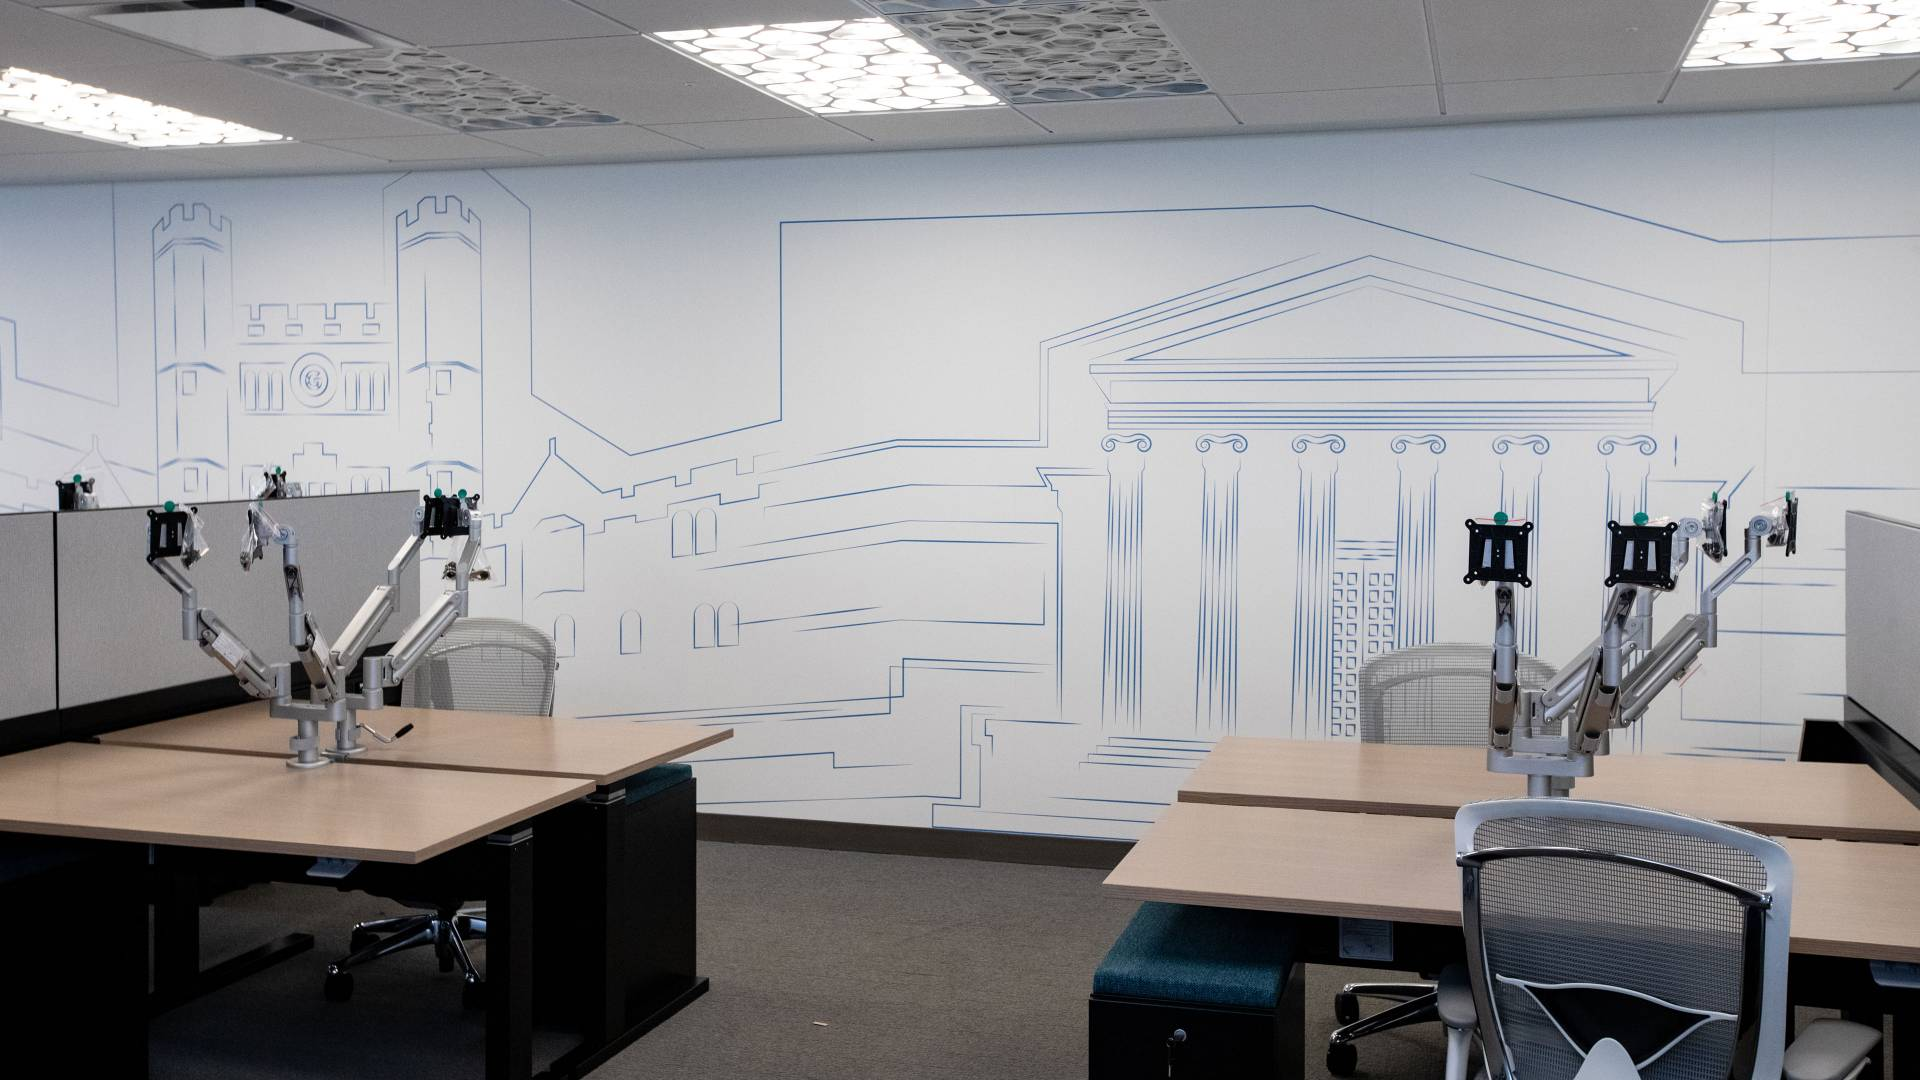 Office interior showing a wall behind desks. The wall has a blue outlined drawing of University buildings.